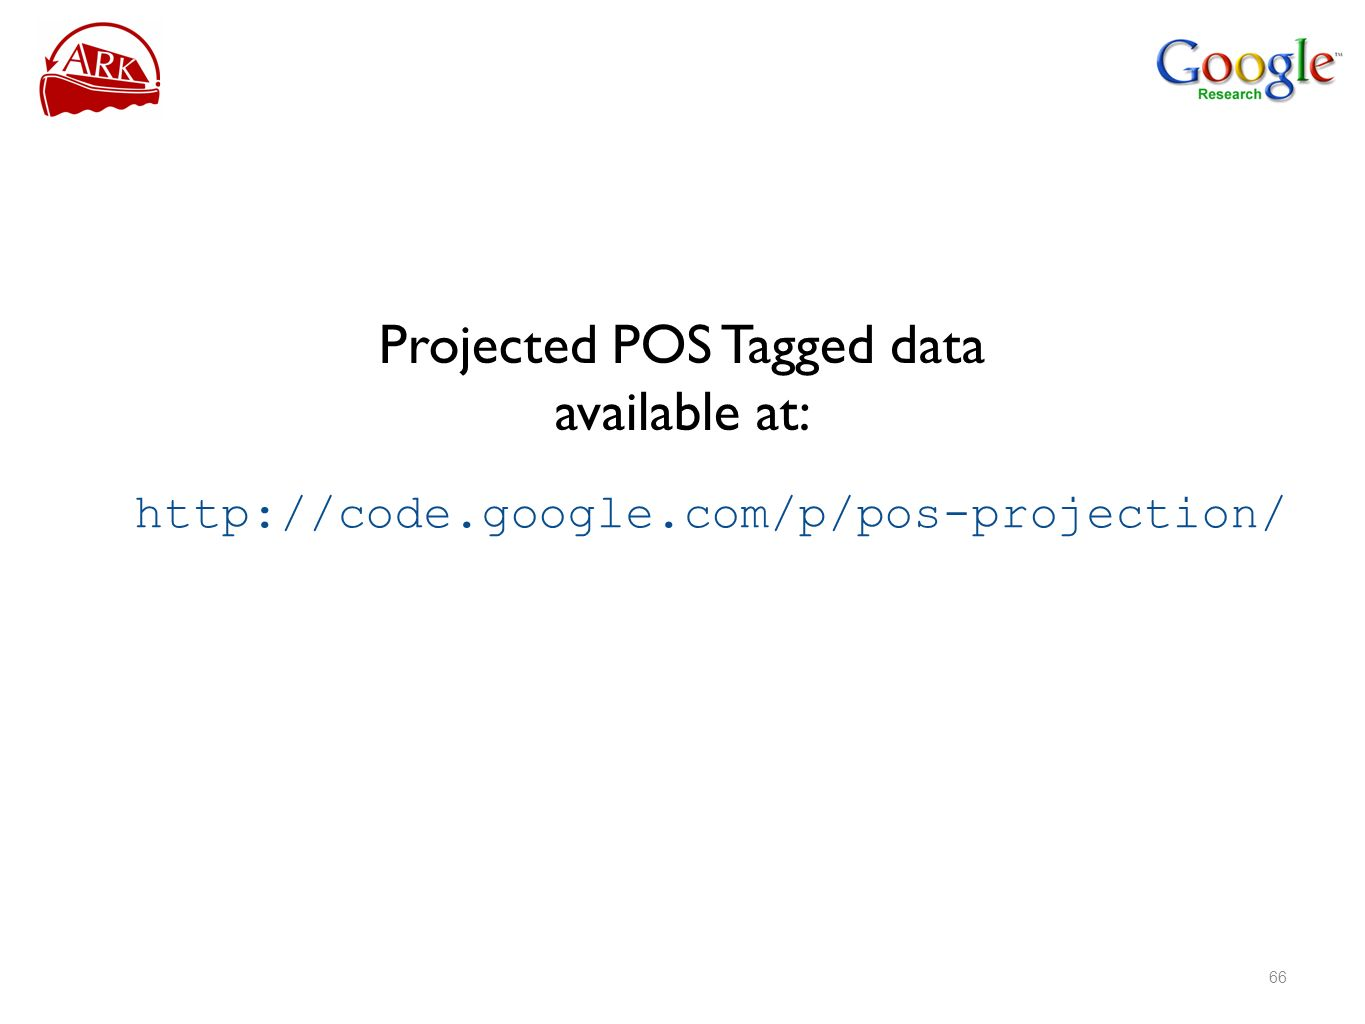 Projected POS Tagged data